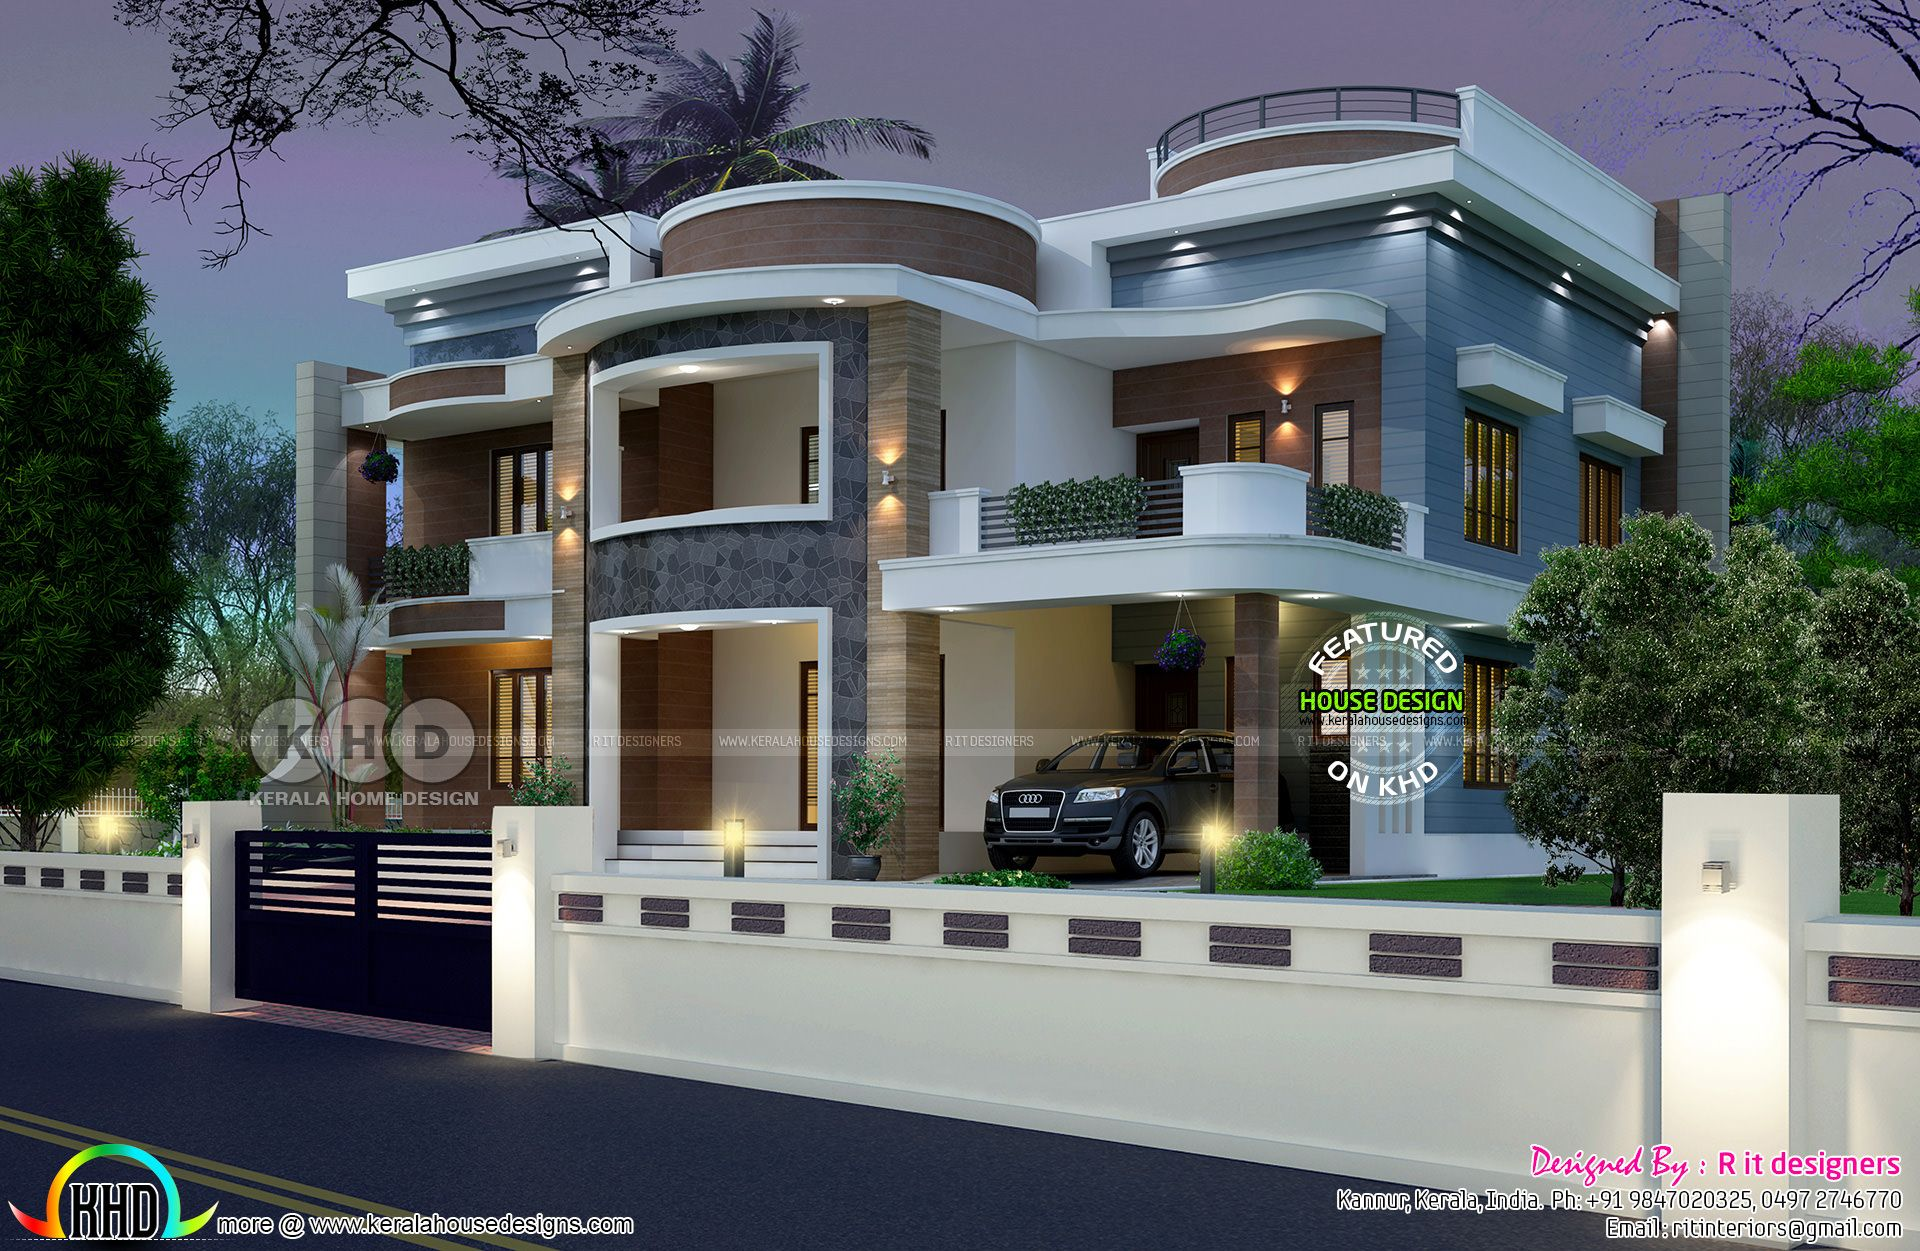 Astounding 6 bedroom house plan 6 bedroom house plans contemporary style homes modern homes